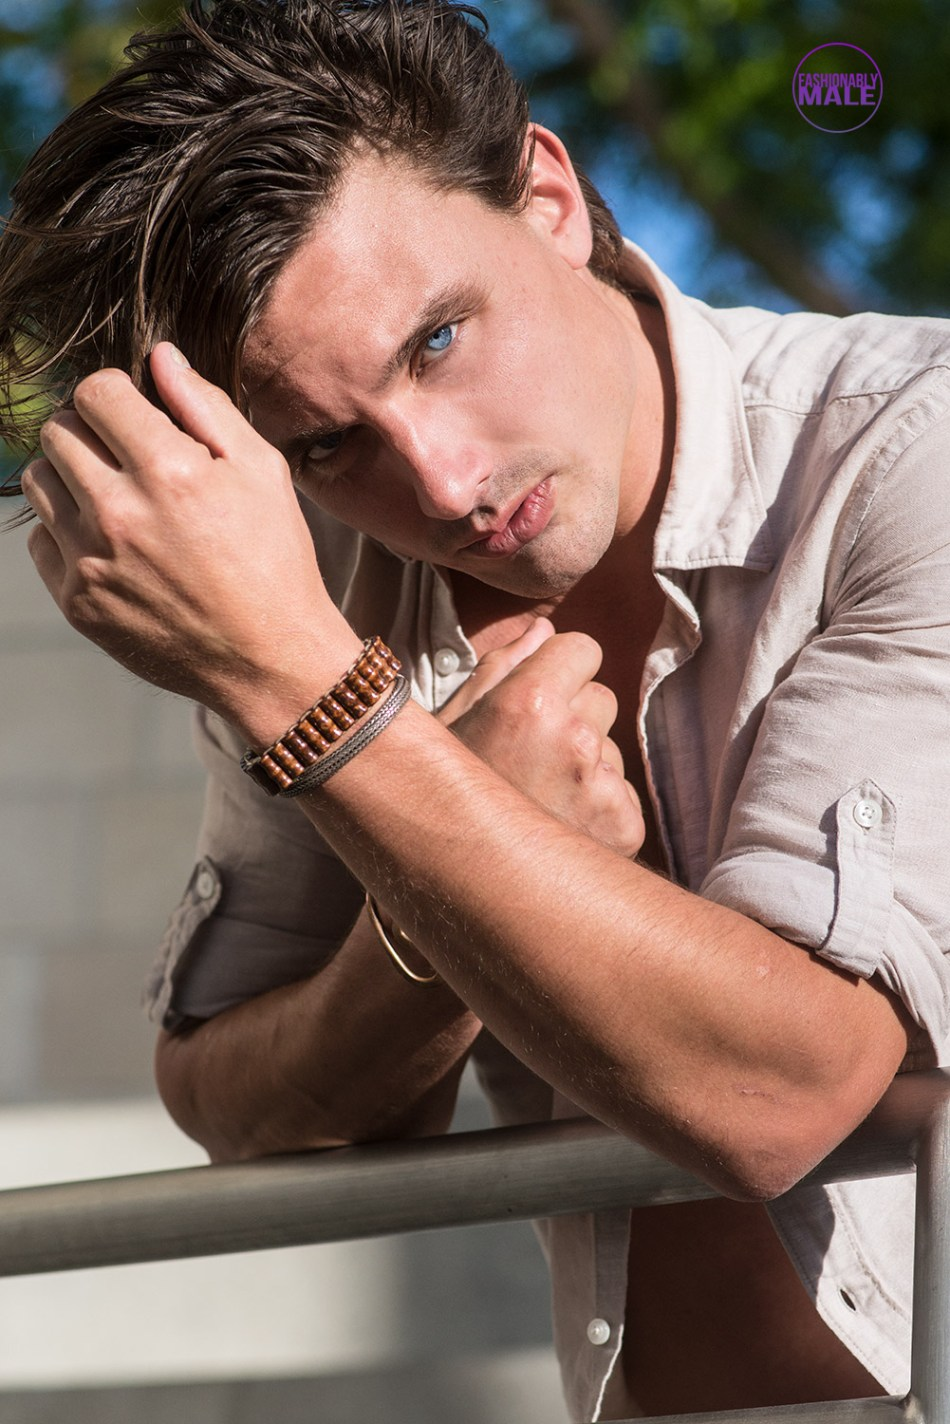 We're here with L.A. Model & Actor Robert MacEwen portrayed by Walter Tabayoyong